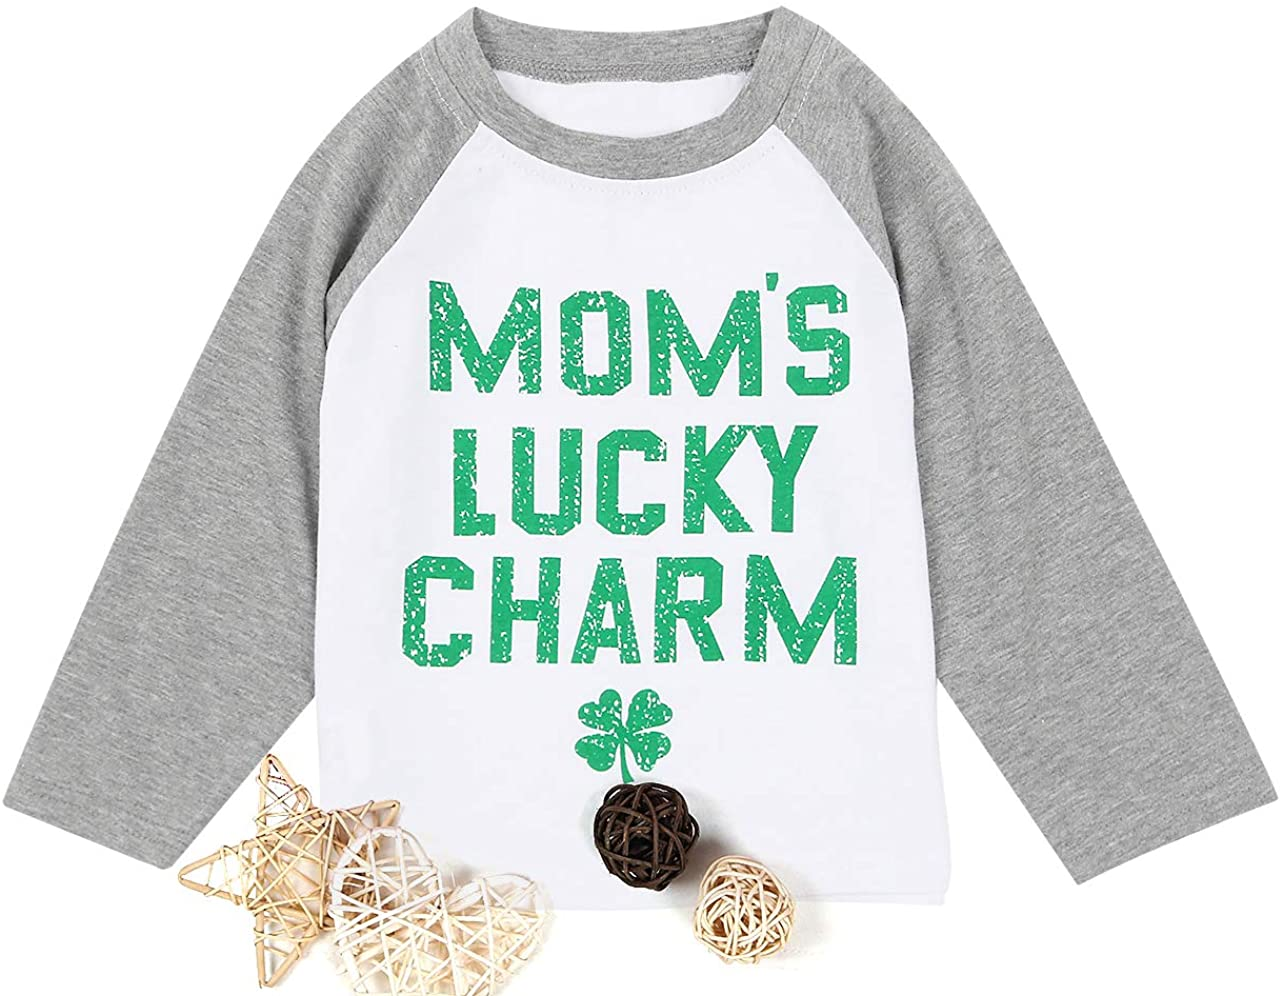 MNLYBABY Baby Moms Lucky Charm T-Shirt Toddler St Patricks Day Clover Print Shirt Casual Long Sleeve Top Tee